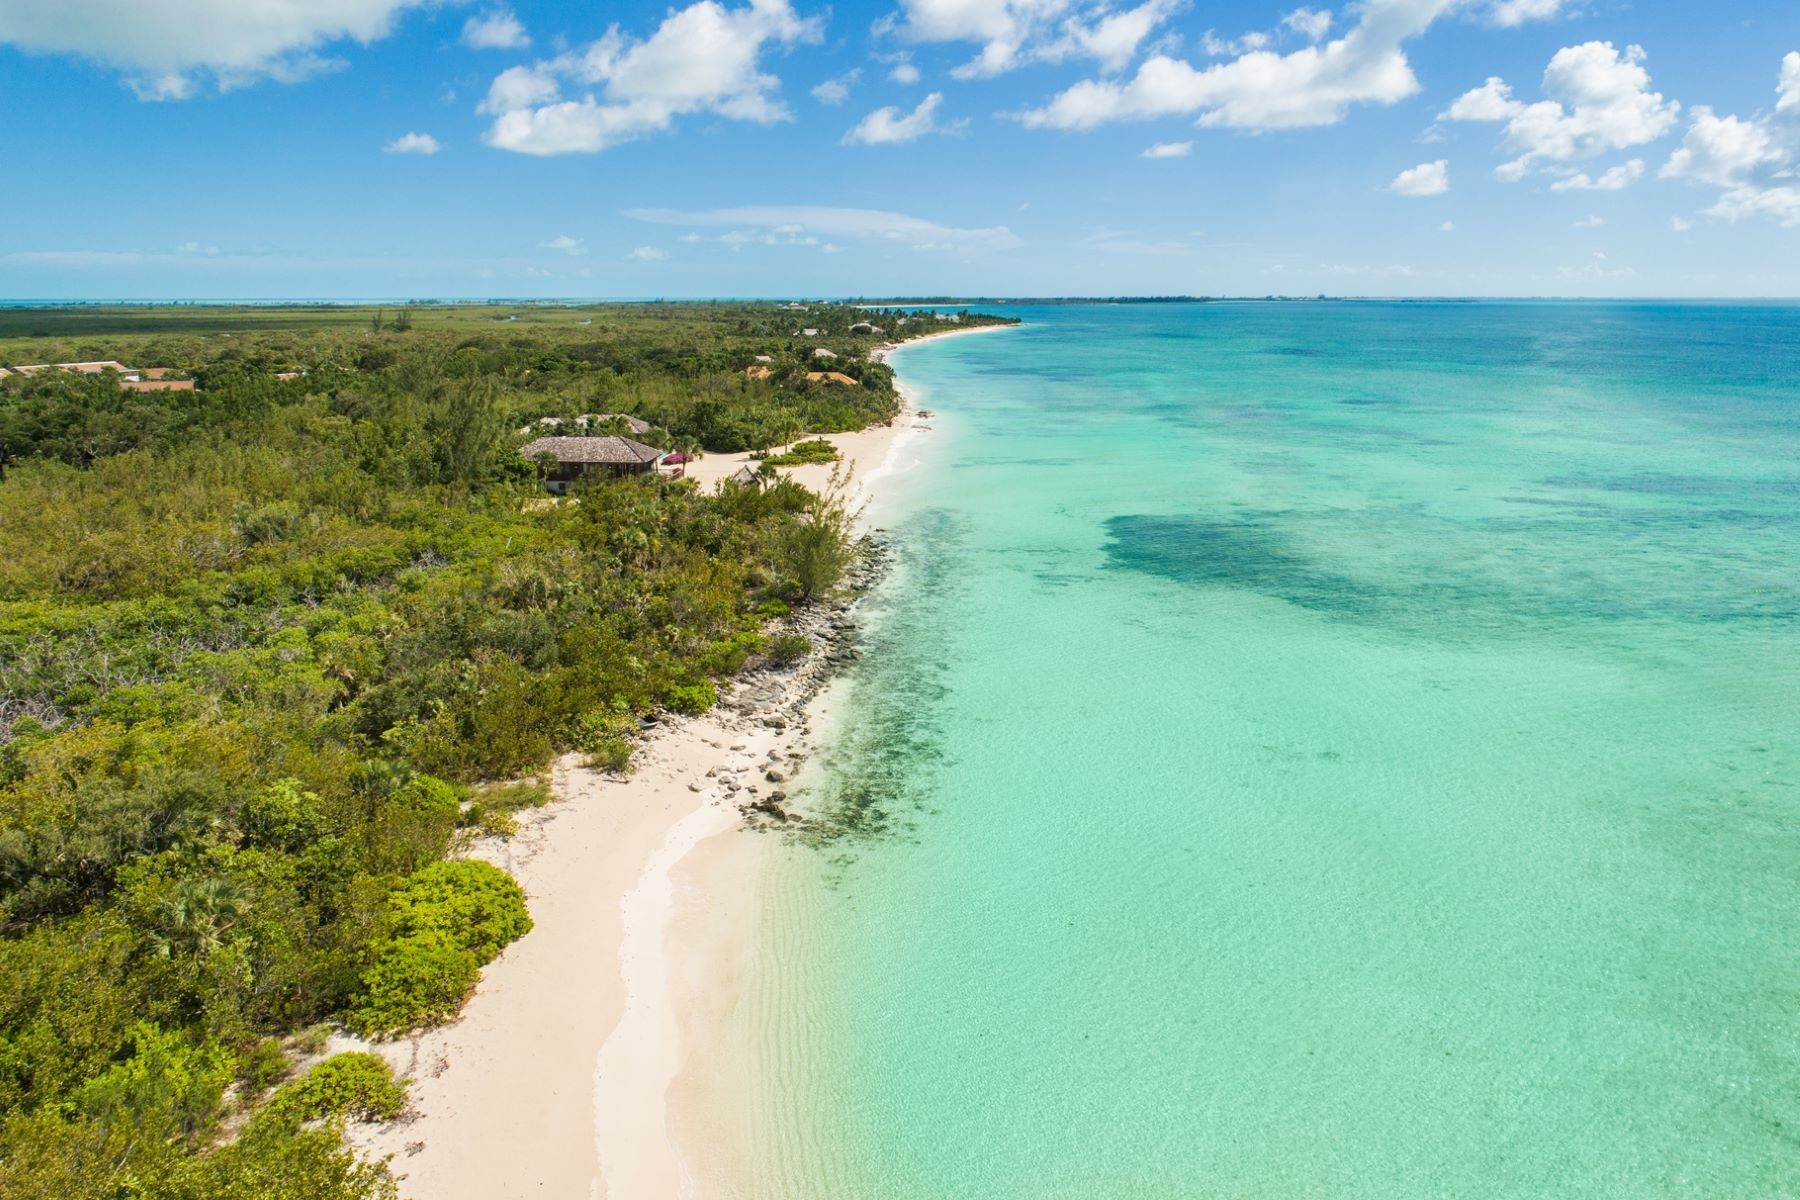 Land for Sale at Parrot Cay Estate Beachfront Lot 118 Parrot Cay Beachfront Estate Parrot Cay, Parrot Cay TKCA 1ZZ Turks And Caicos Islands